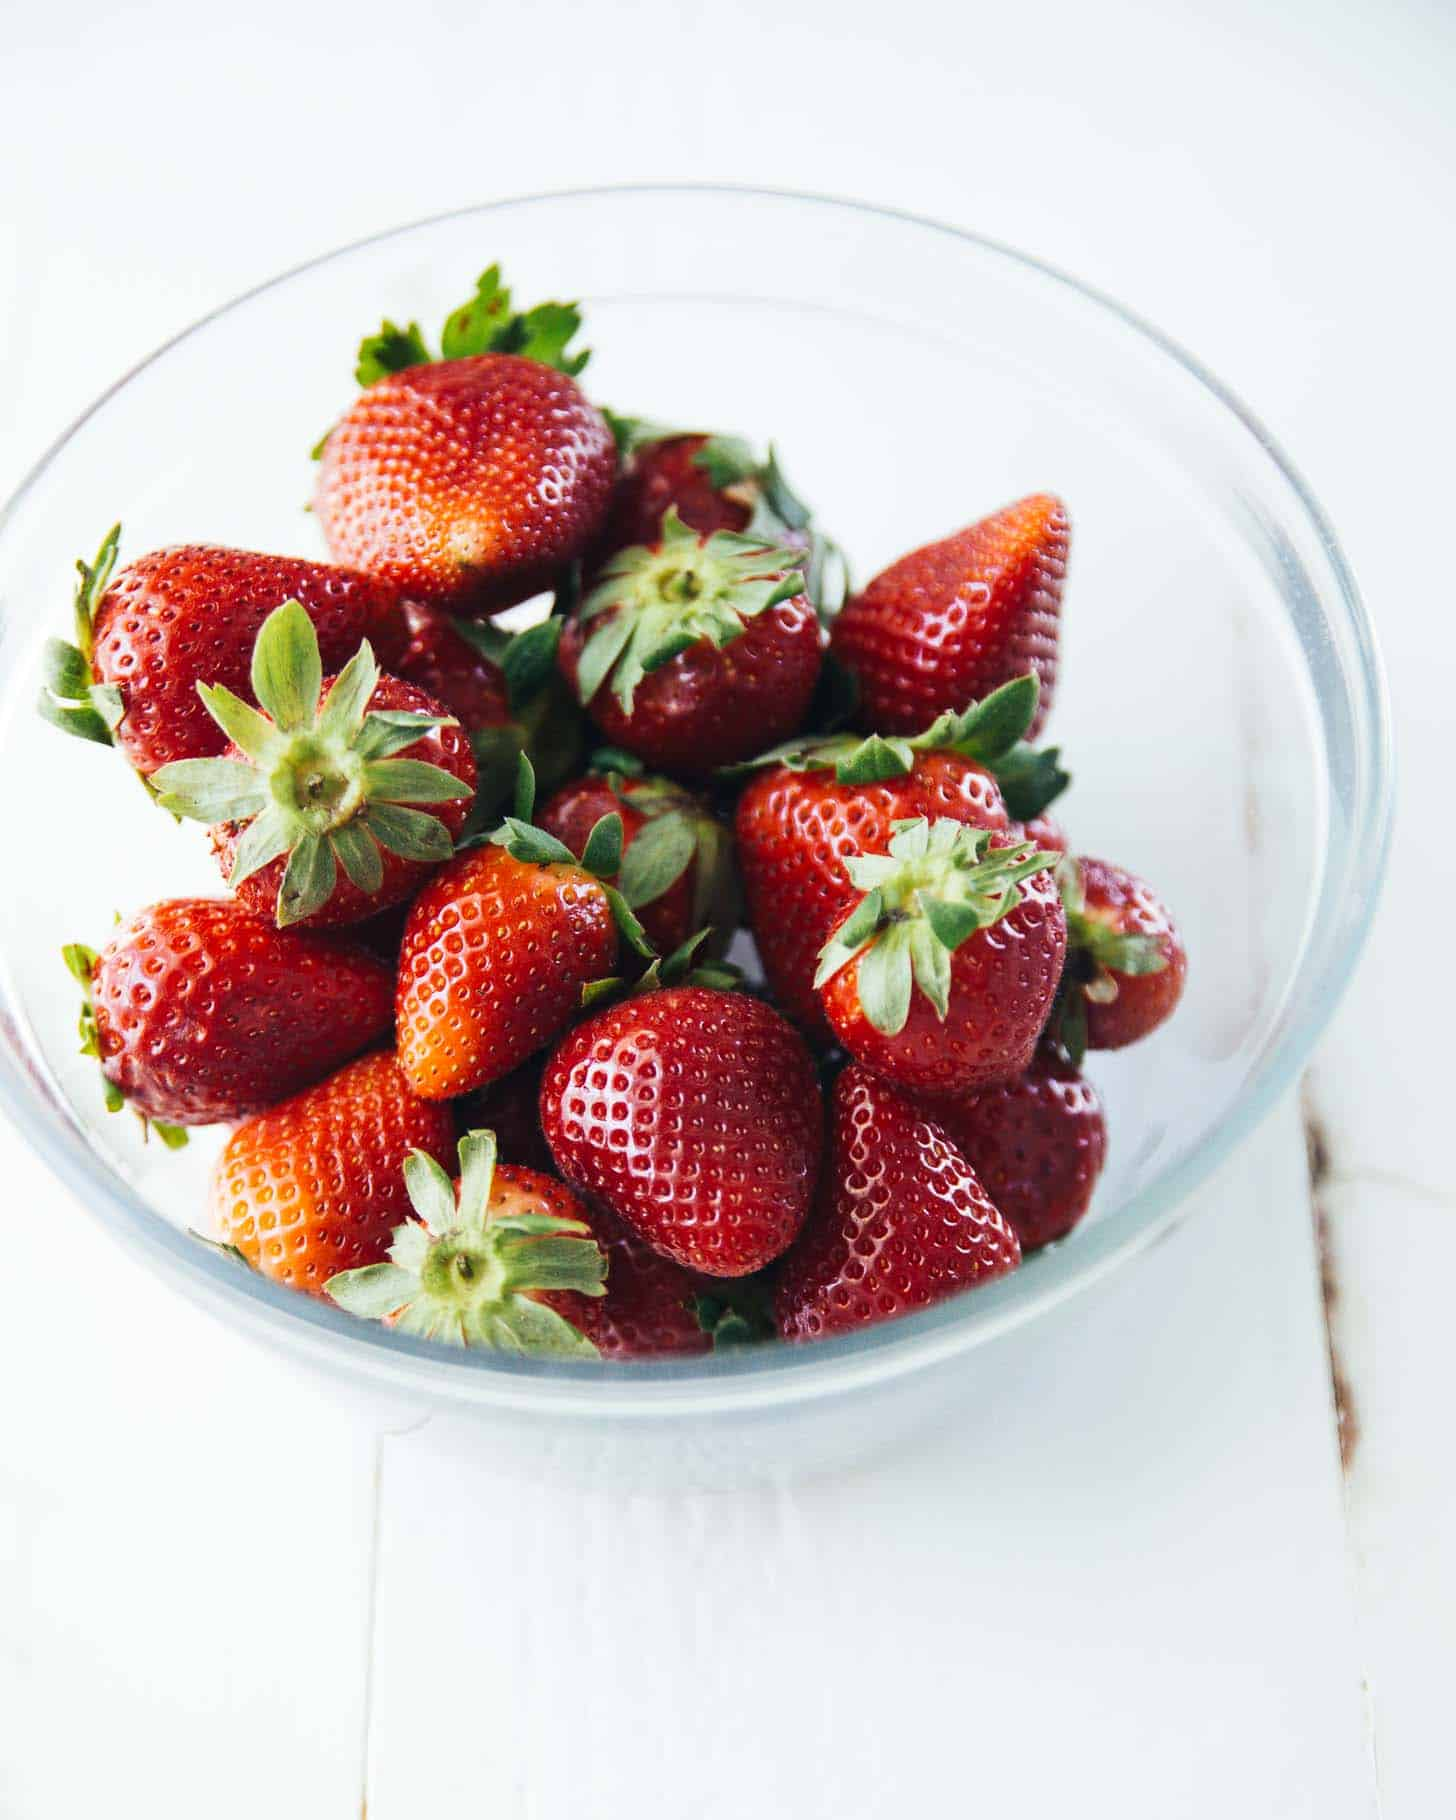 fresh strawberries in a clear bowl